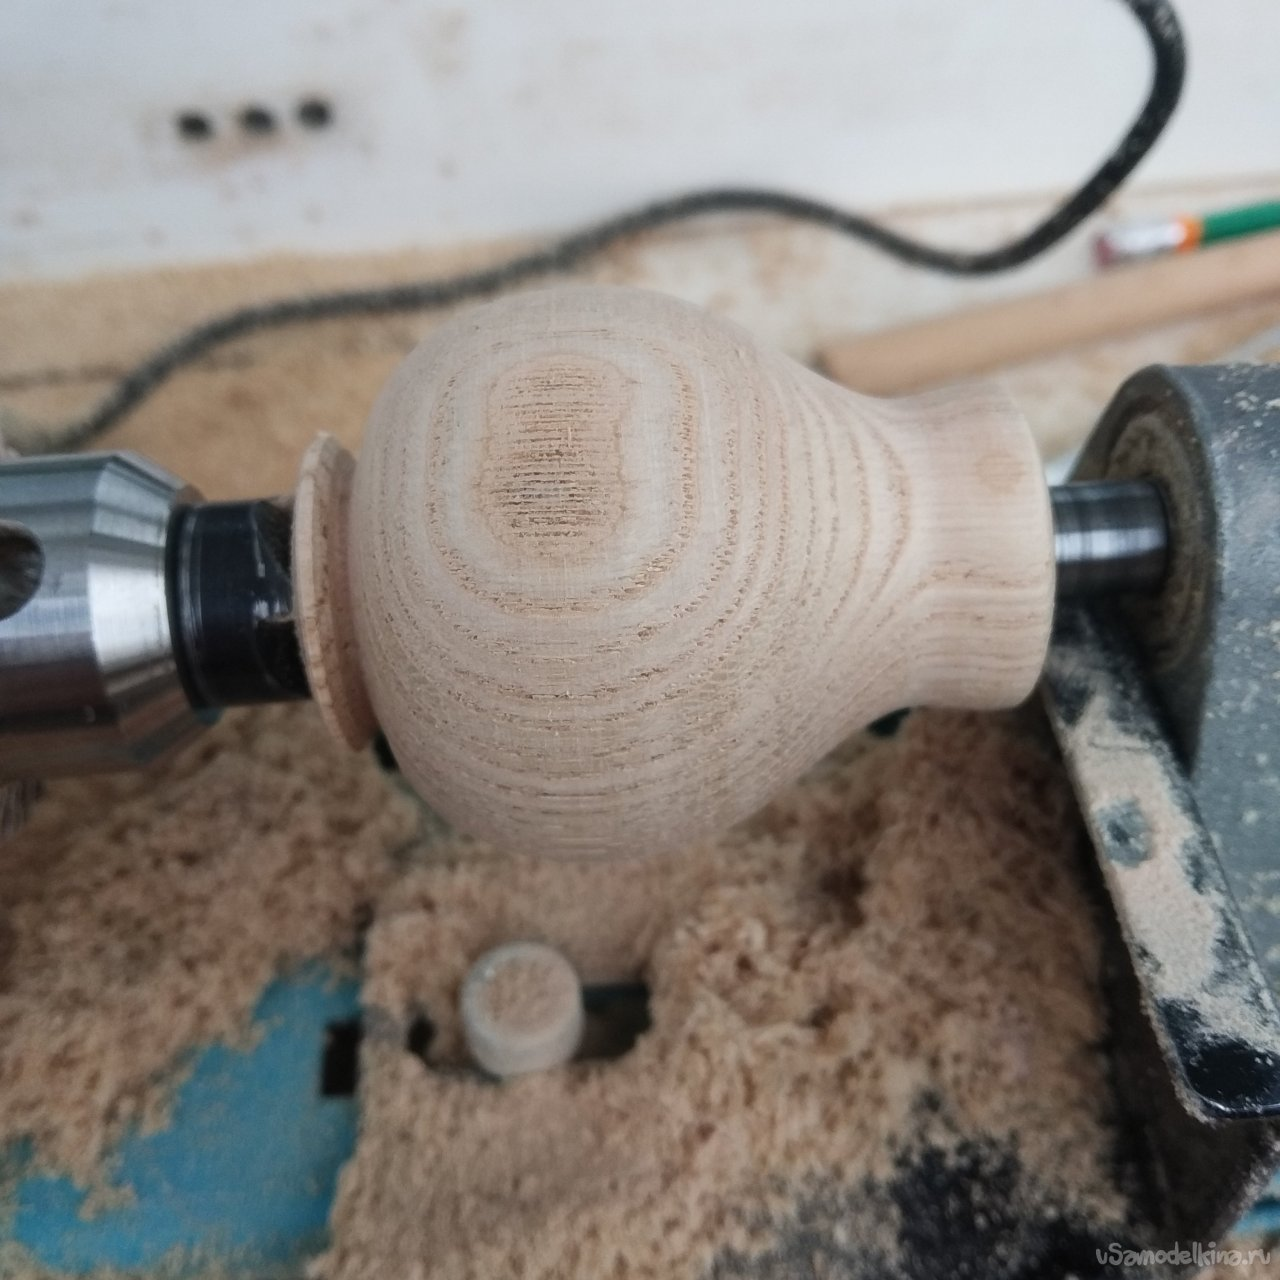 Handle for the tool